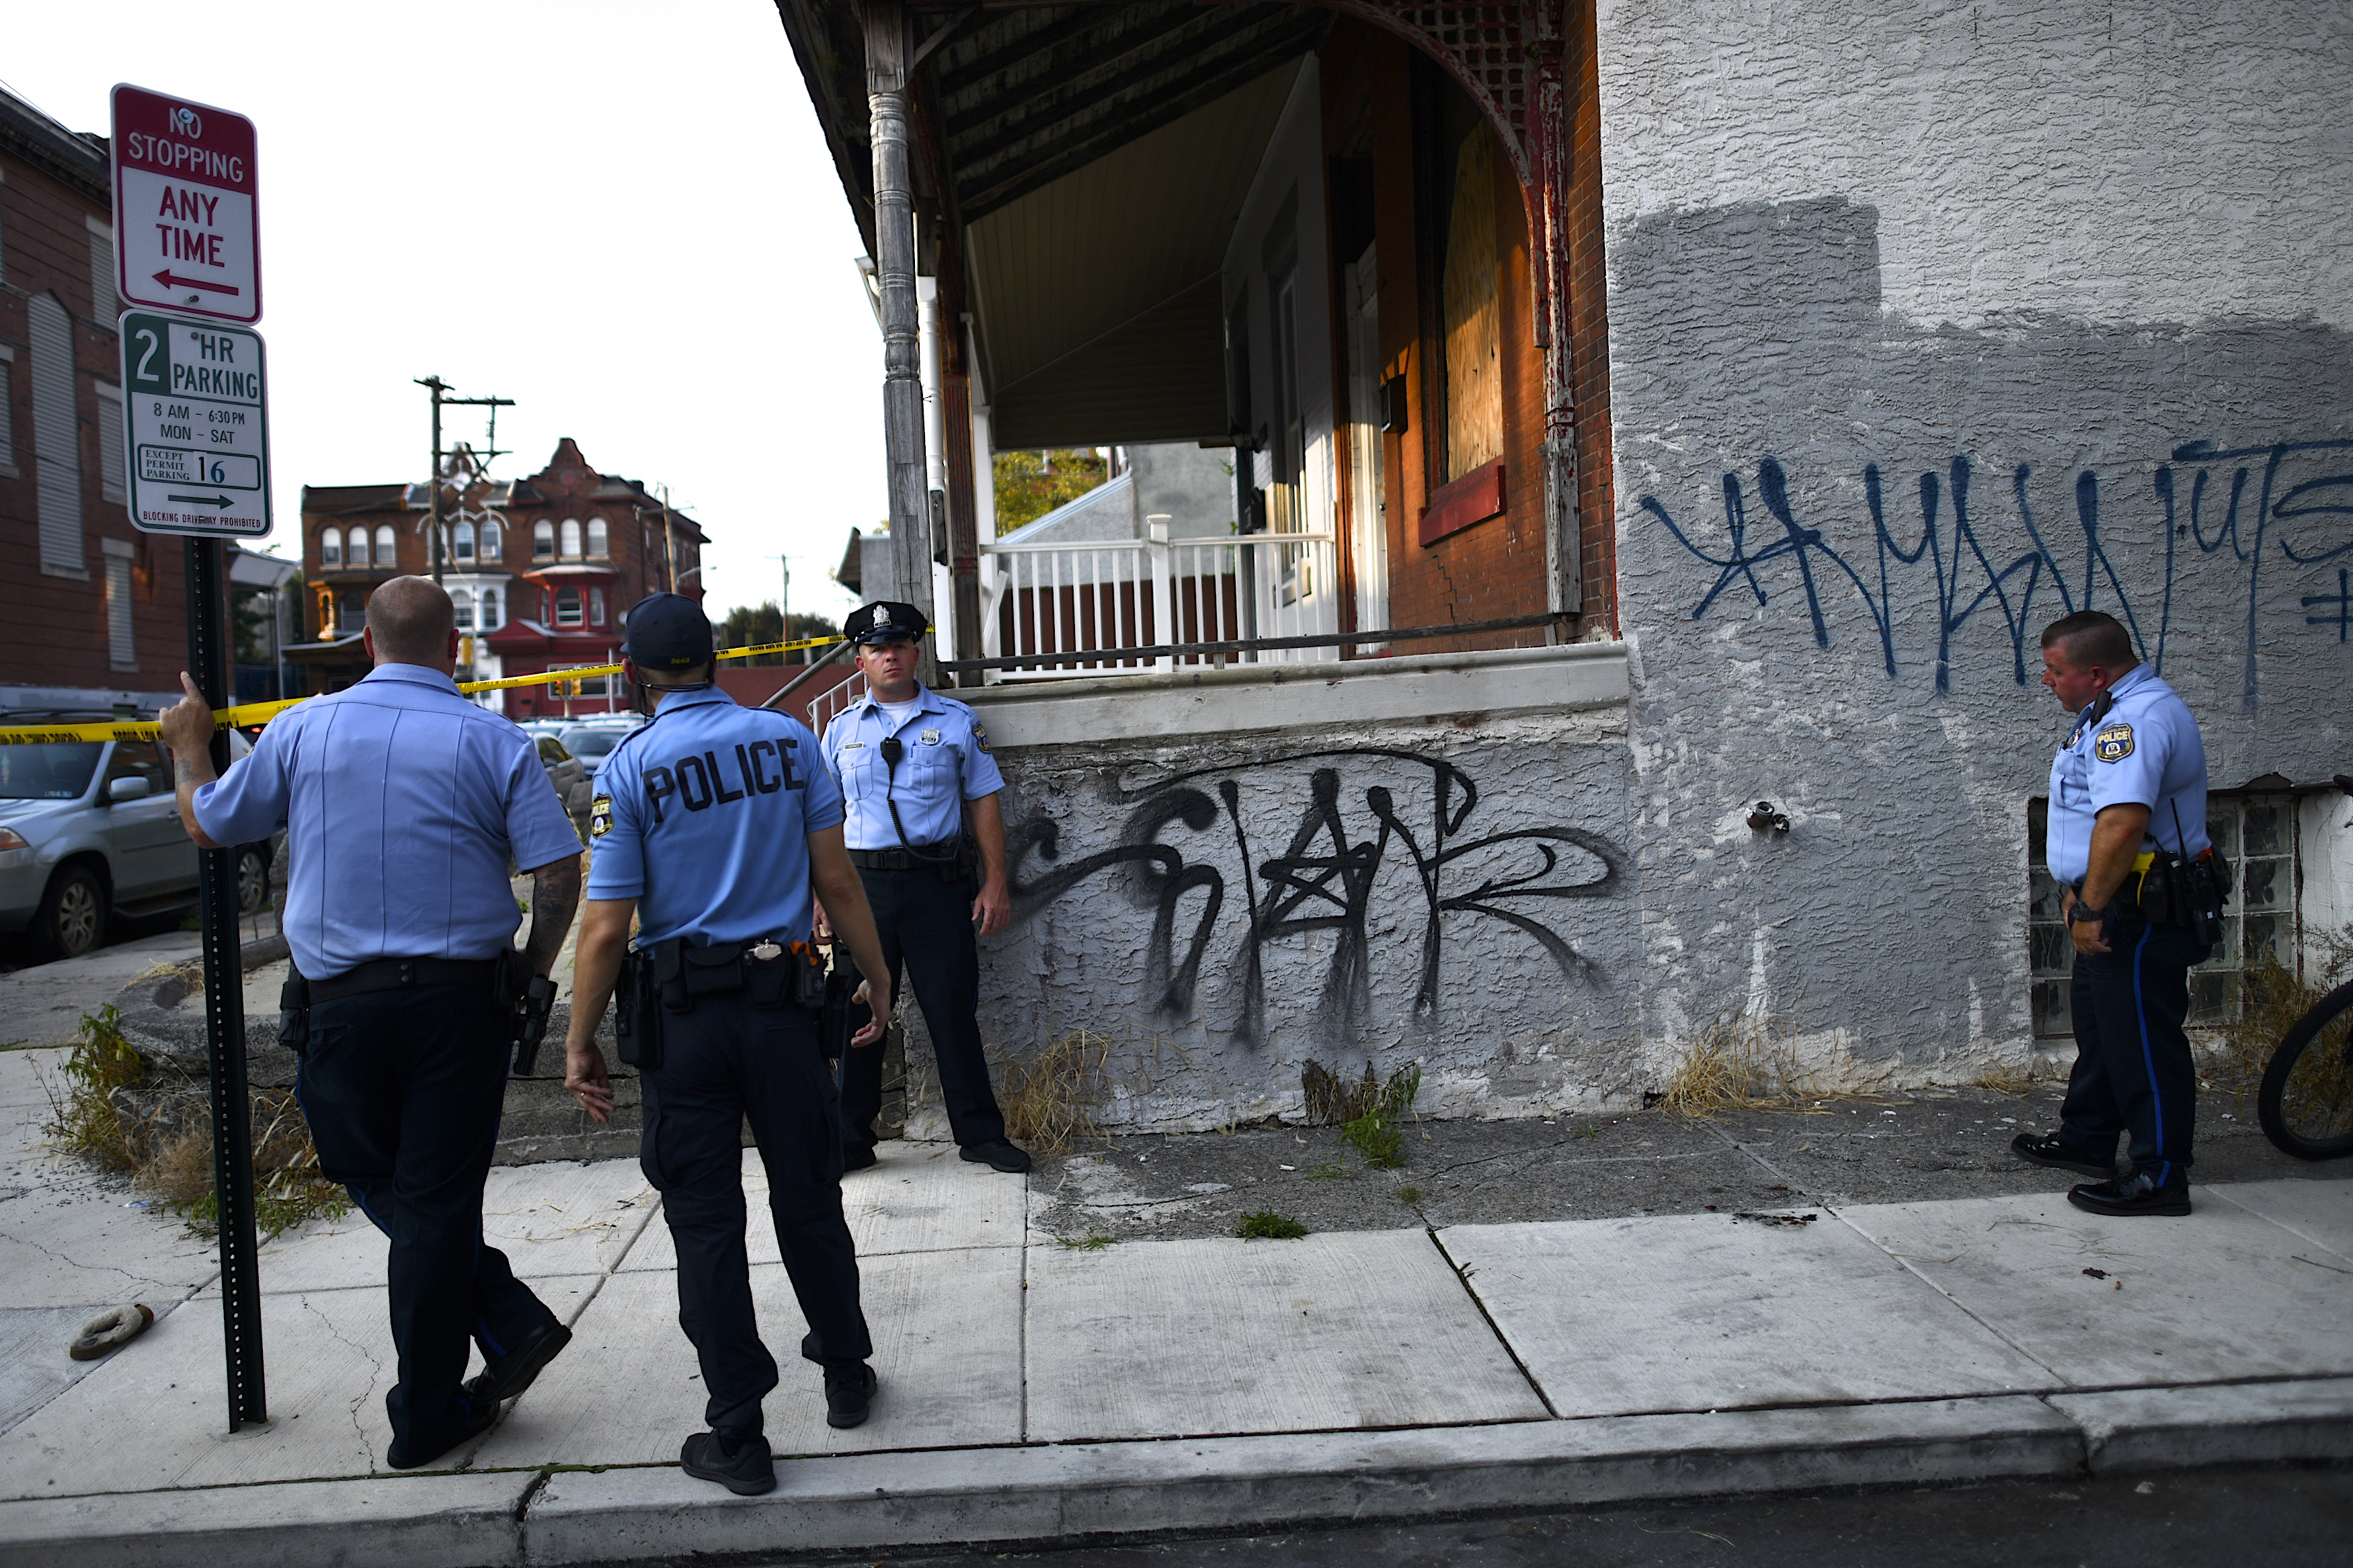 Police officers gather near the scene of a shooting on August 14, 2019 in Philadelphia, Pennsylvania.